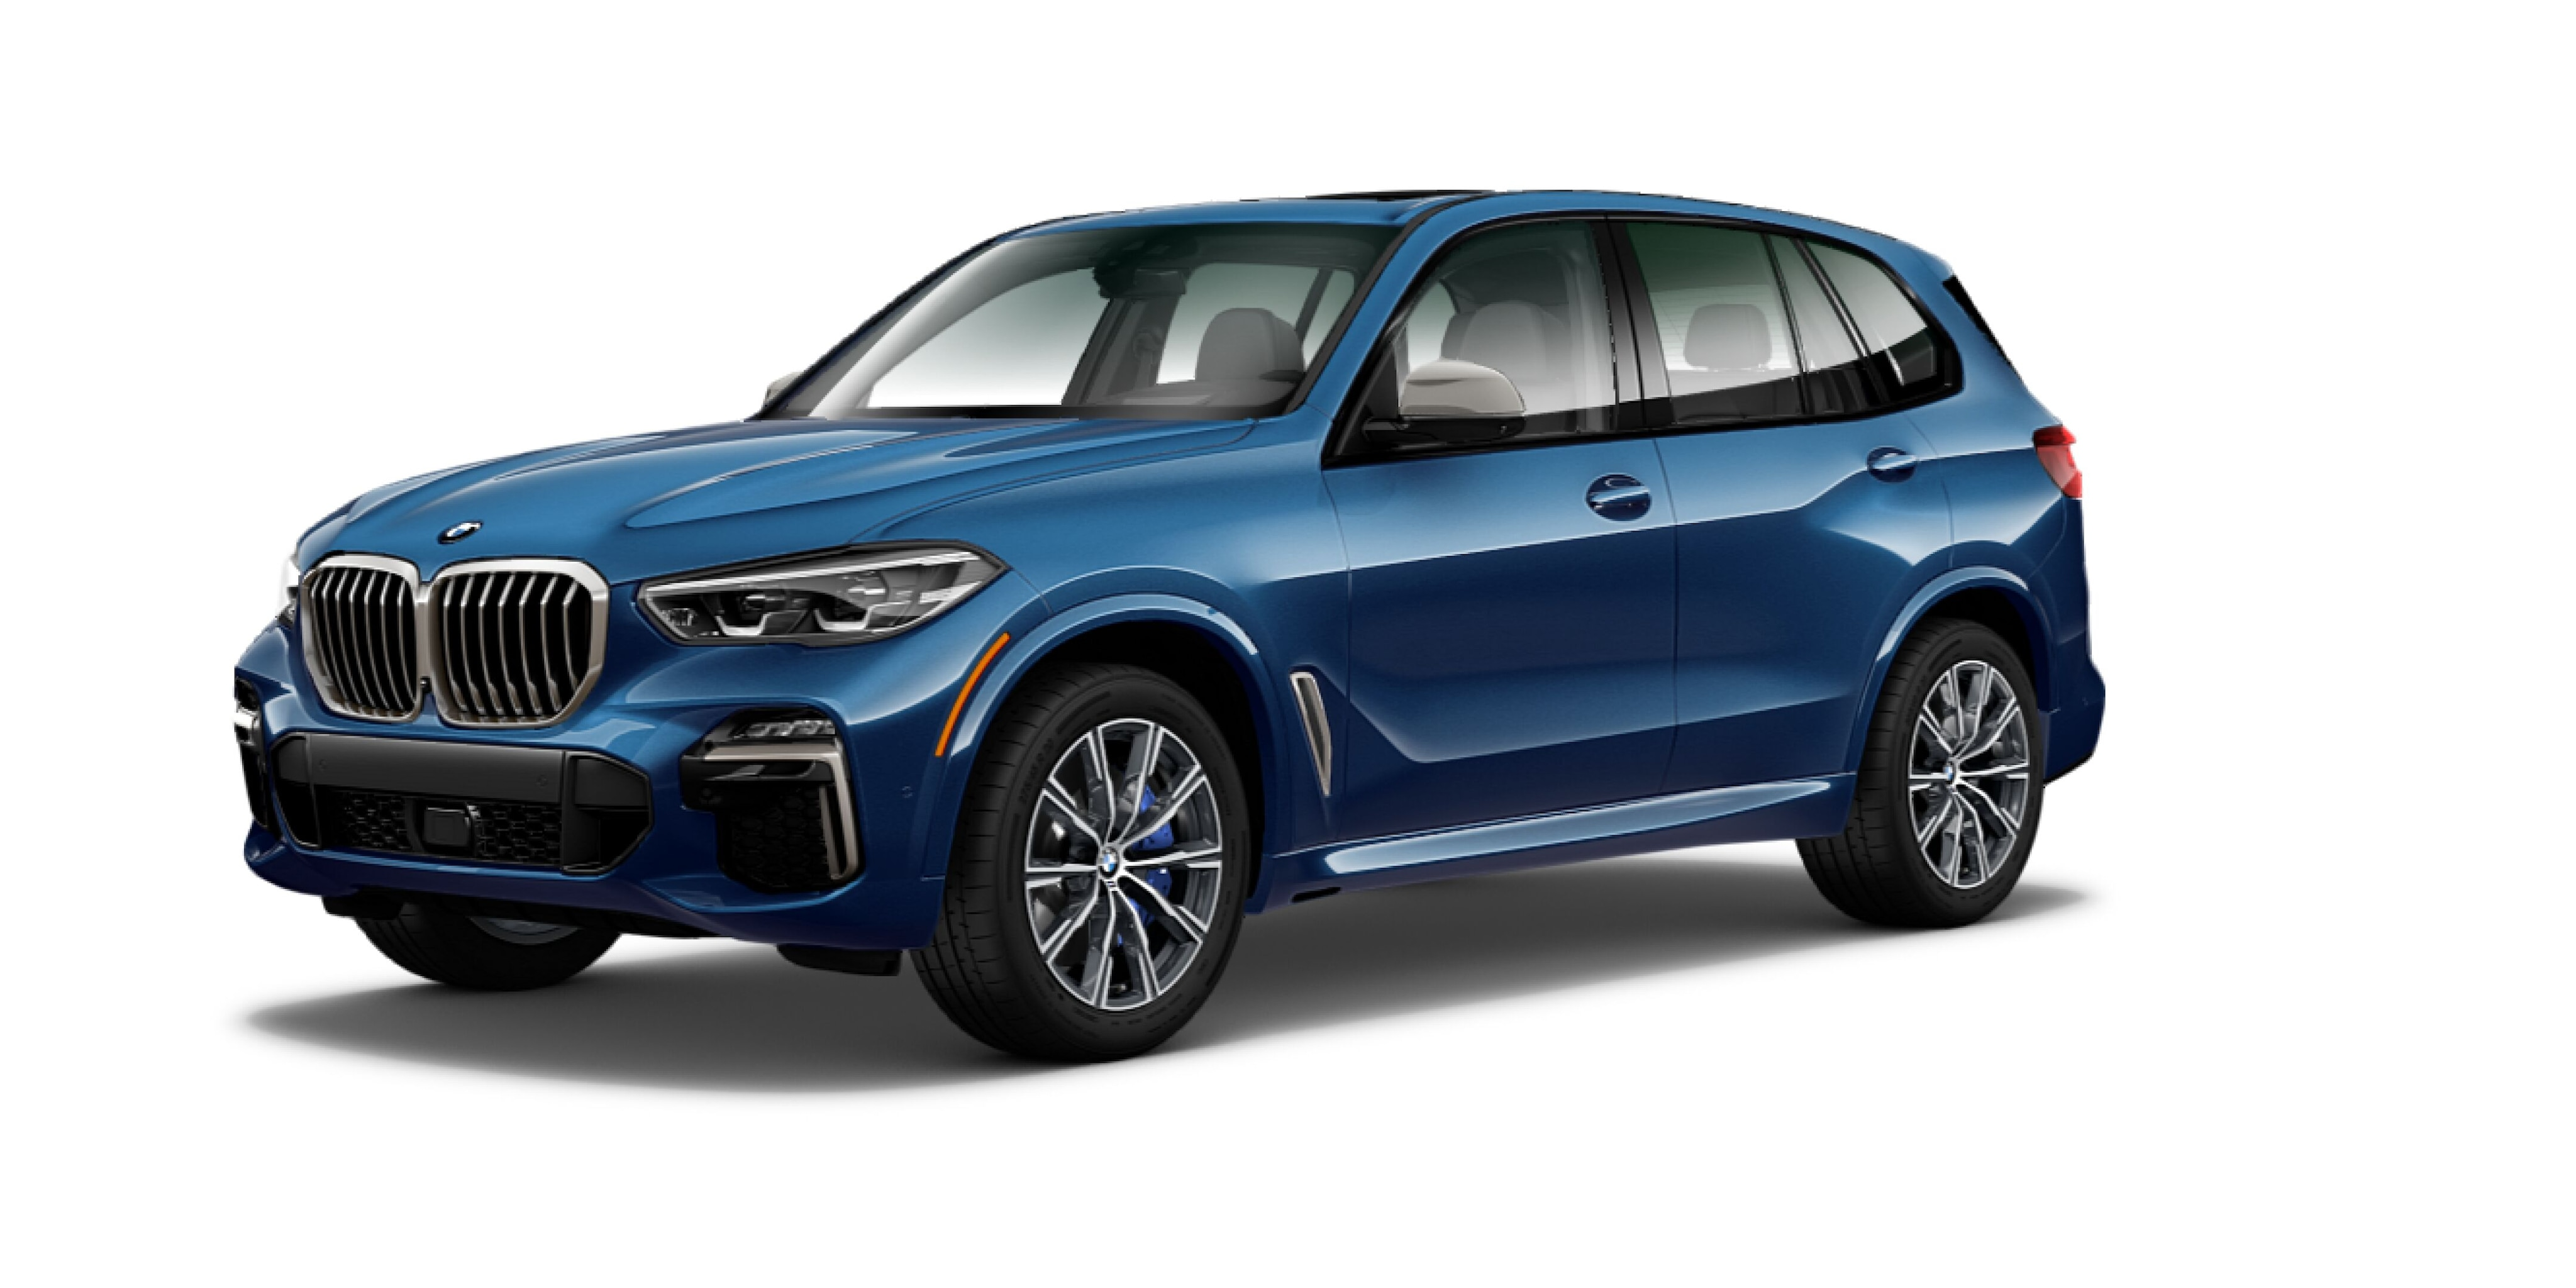 Best options for 2020 bmw x5